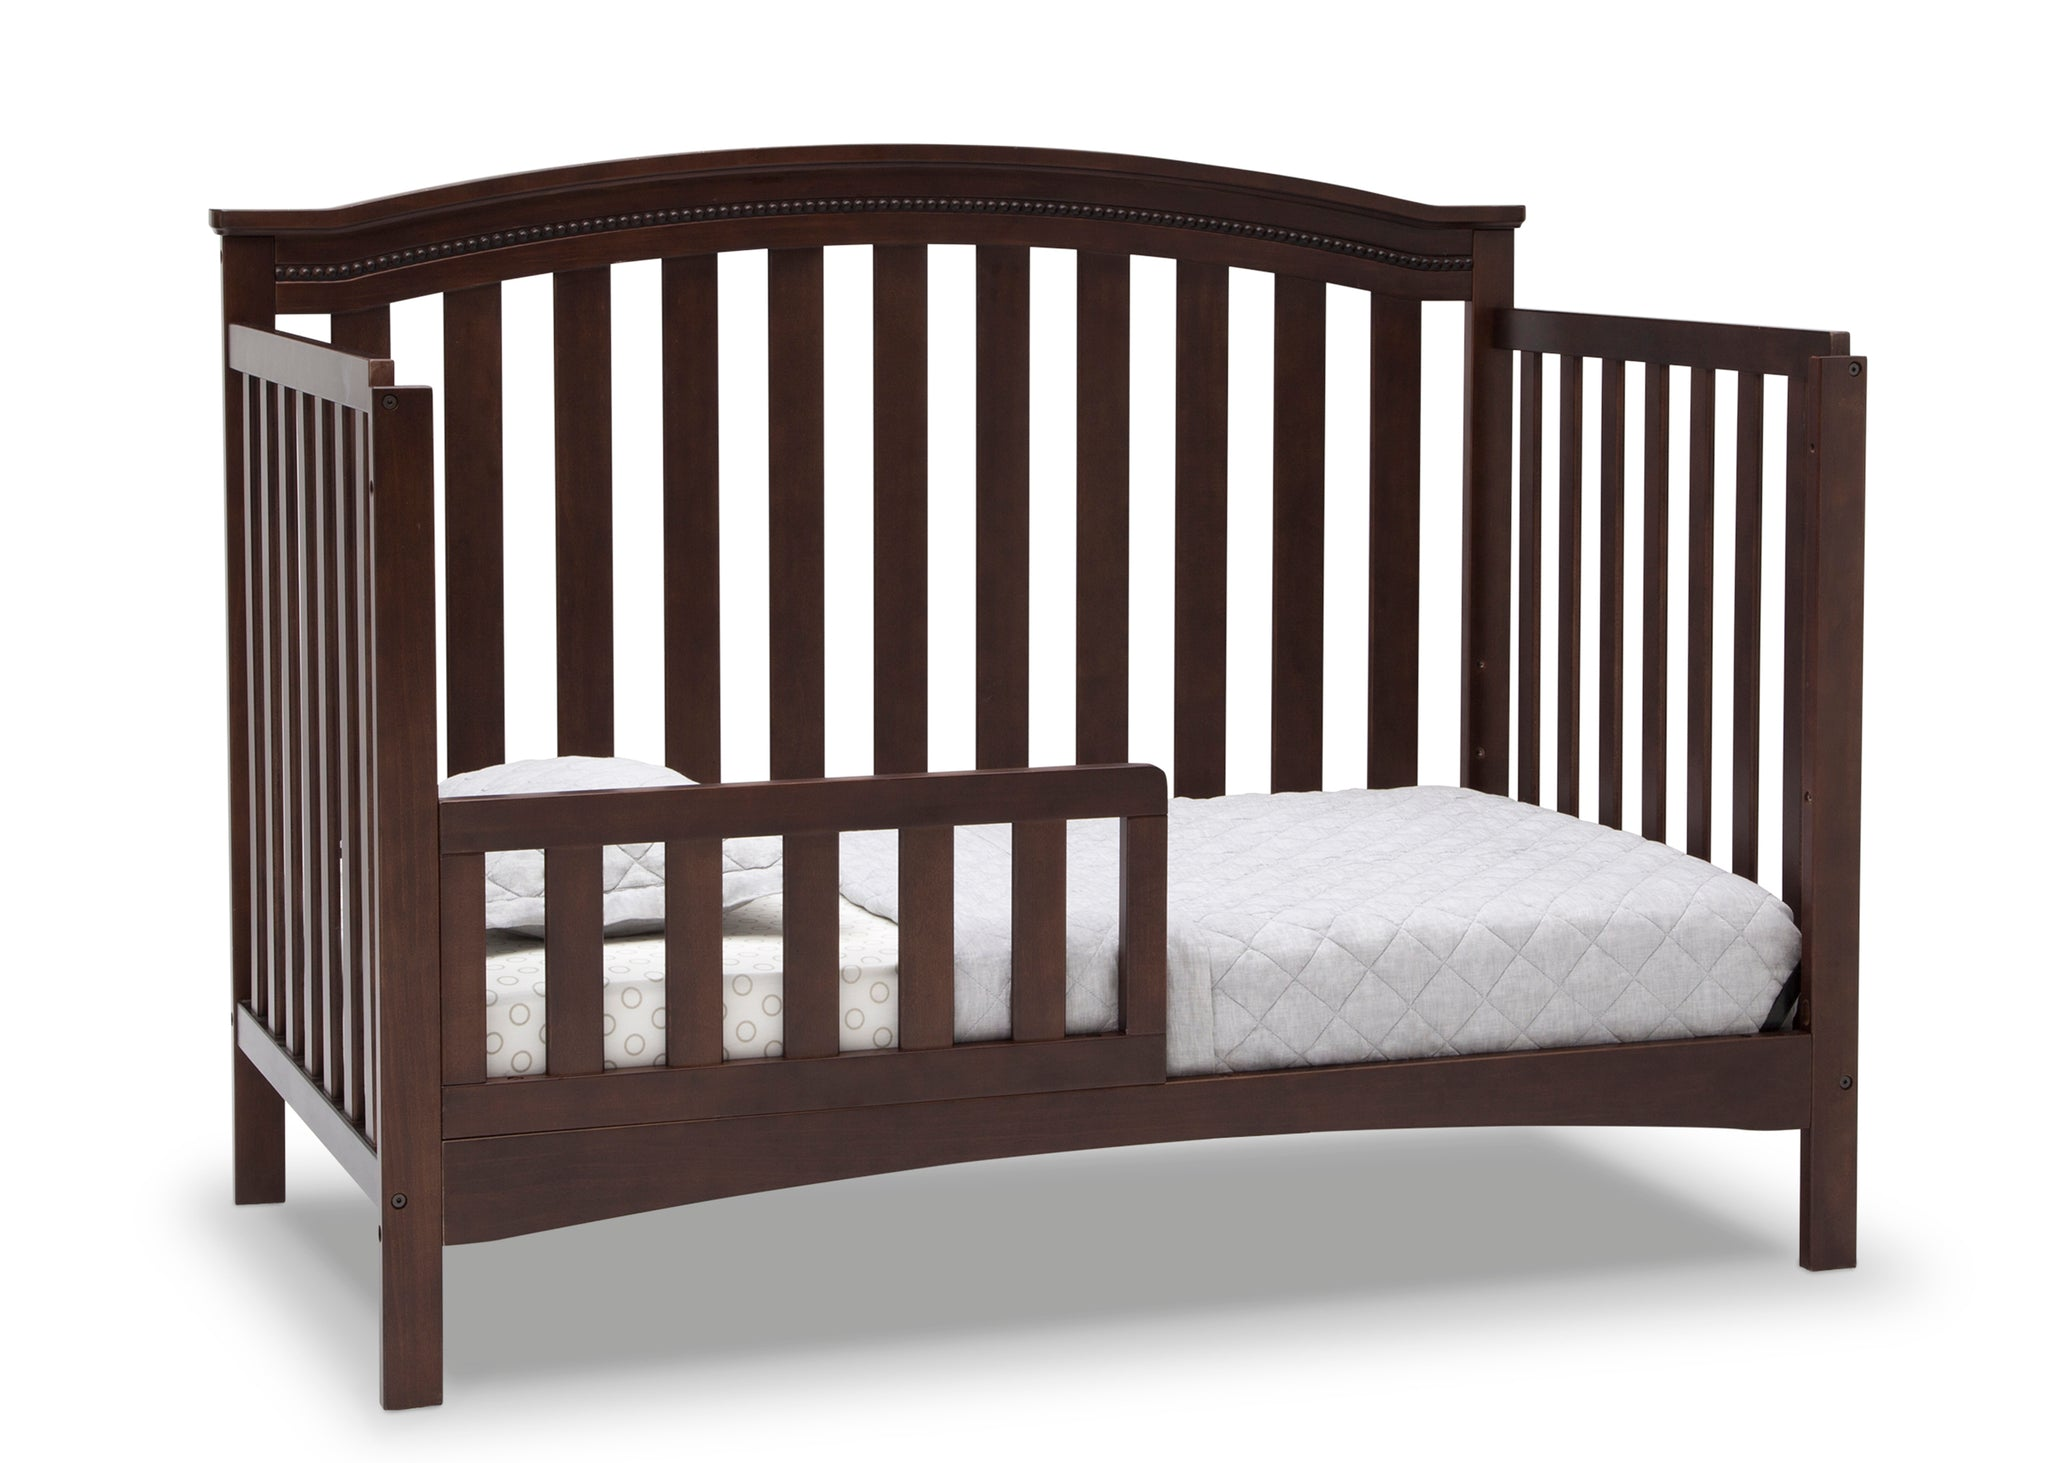 Delta Children Walnut Espresso (1324) Waverly 6-in-1 Convertible Crib, Right Toddler Bed Silo View